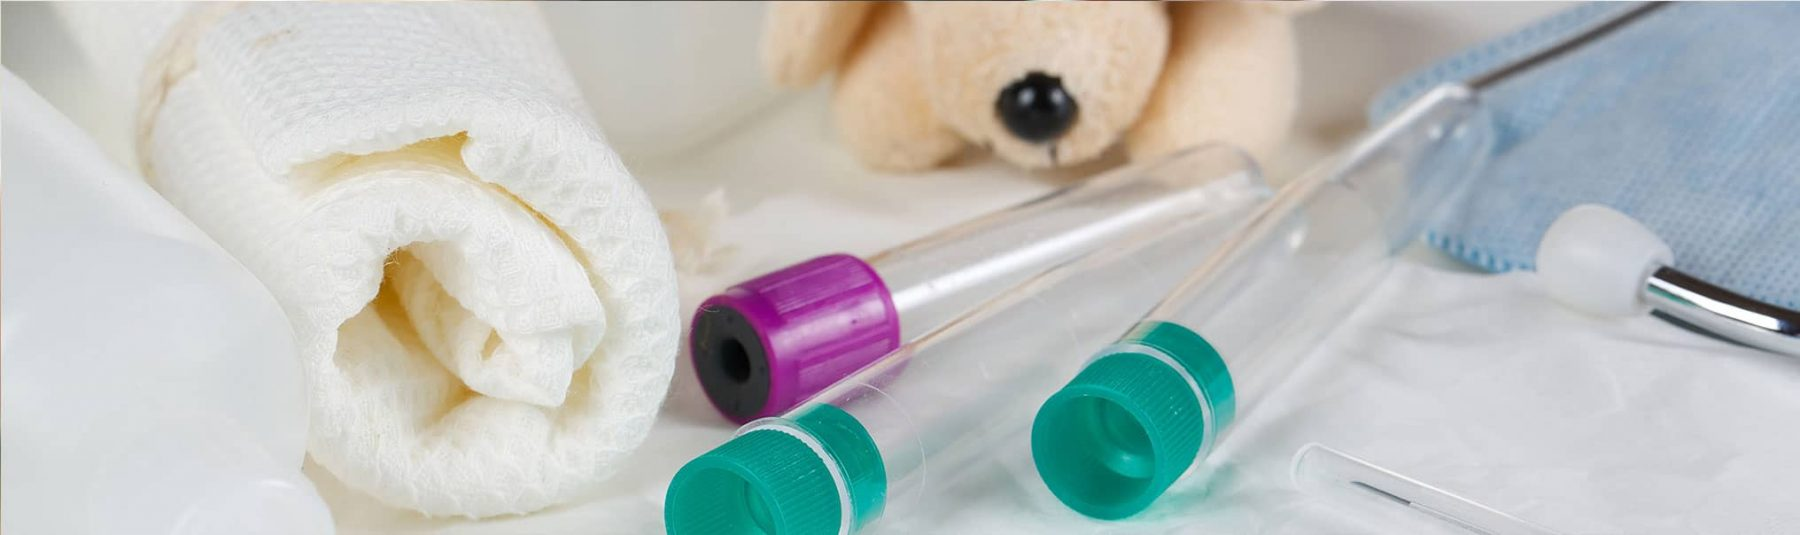 Tools for blood test and dog toy